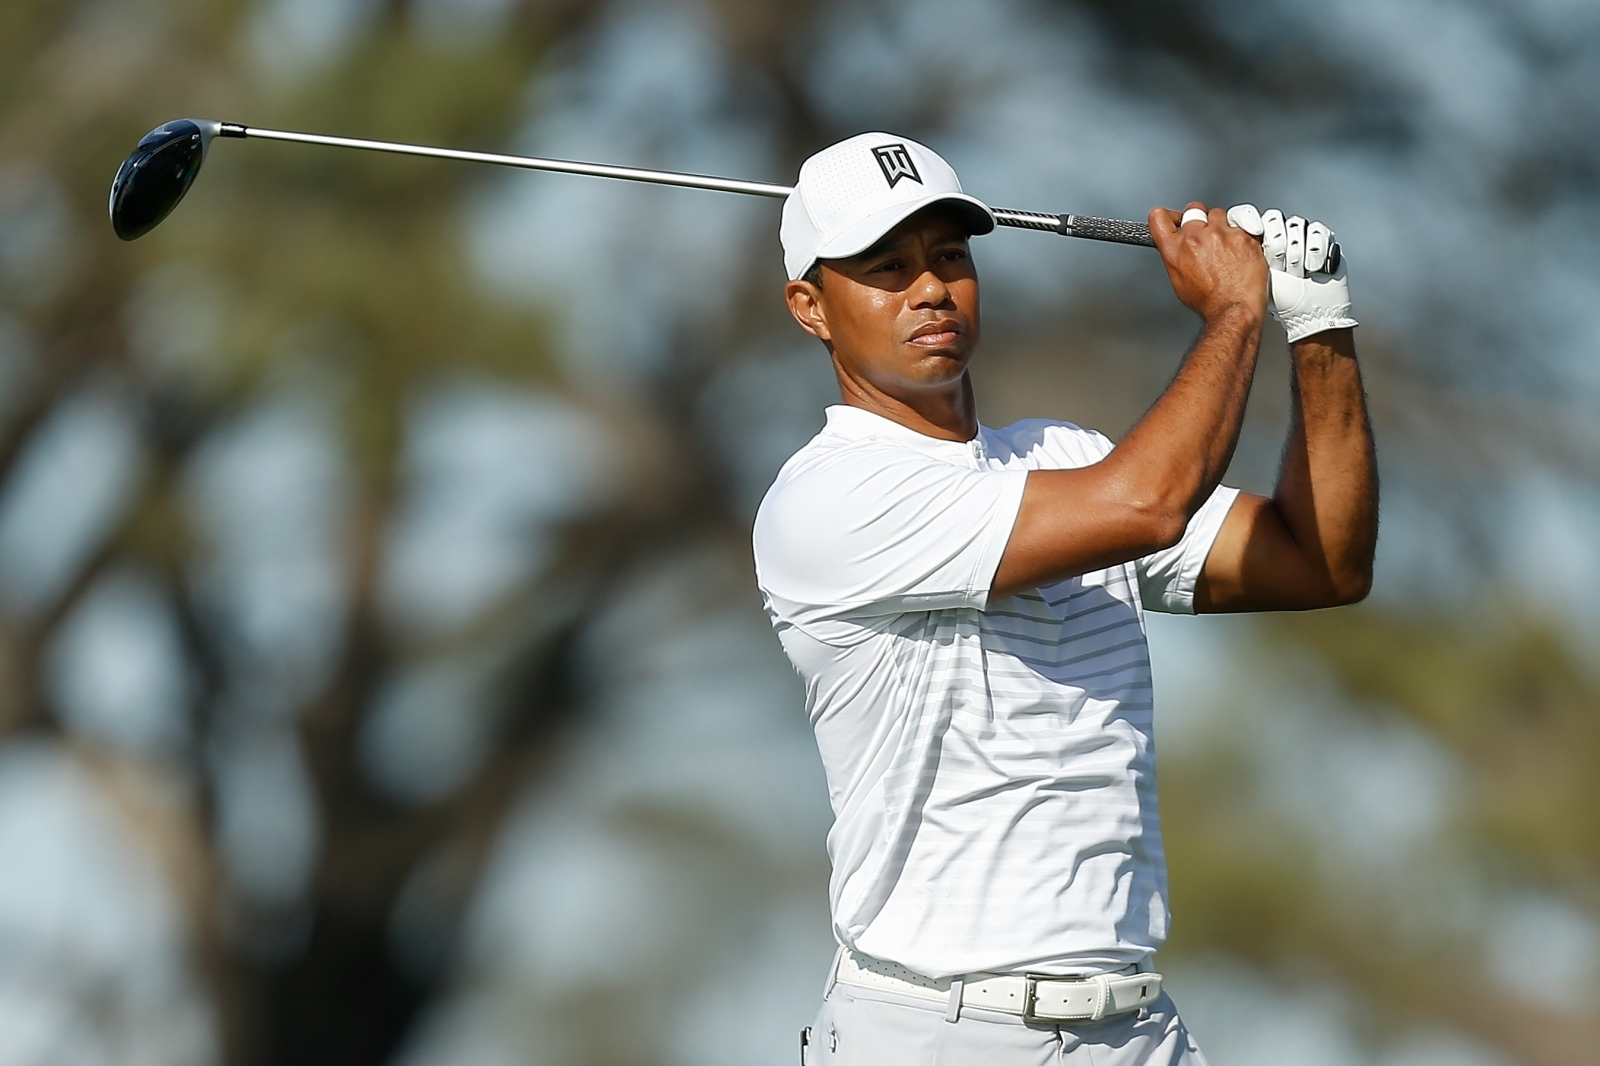 Tiger Woods won't say whether he'll play back-to-back weeks